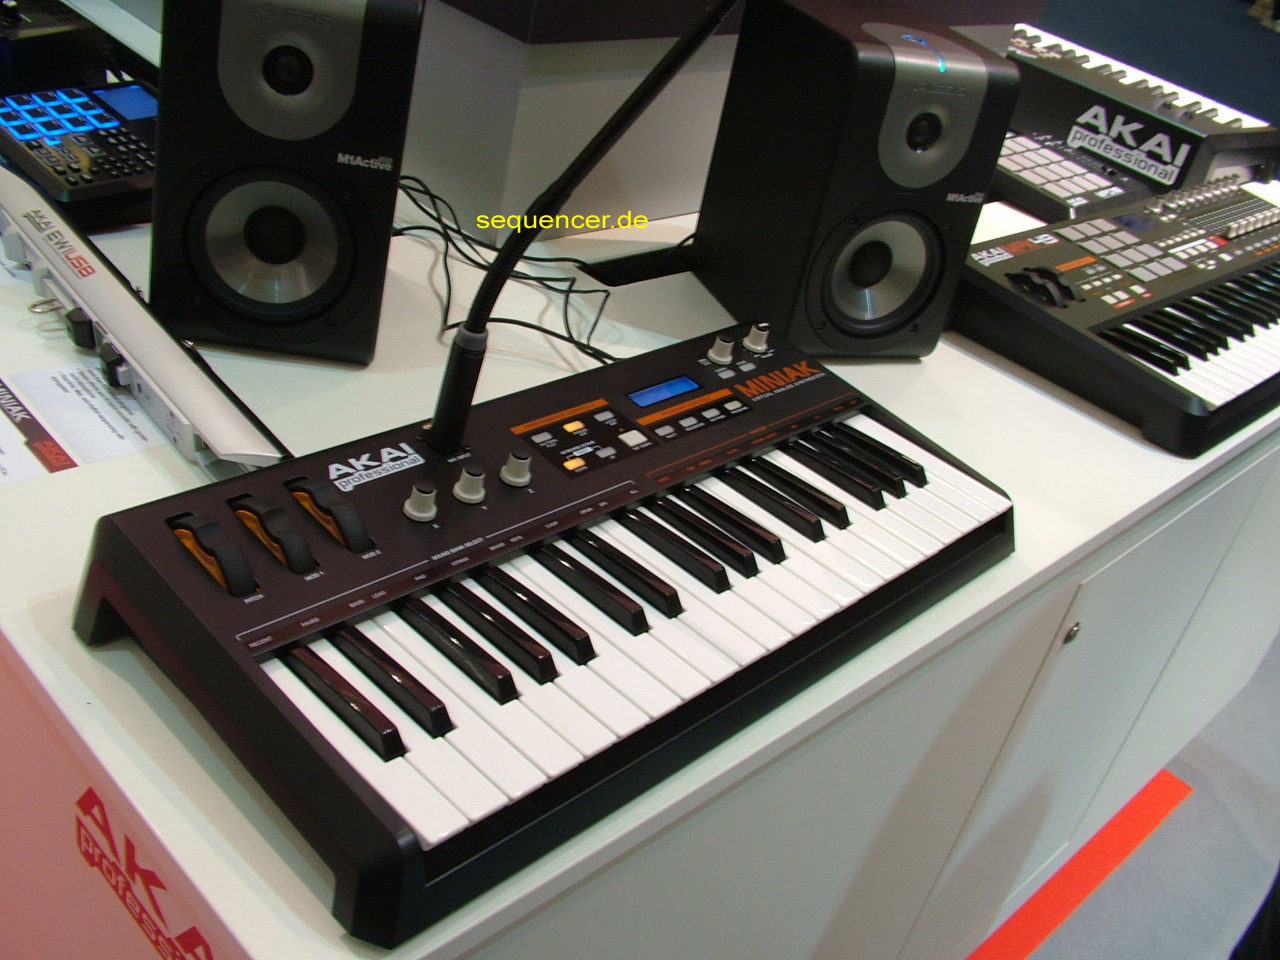 Akai Miniak synthesizer